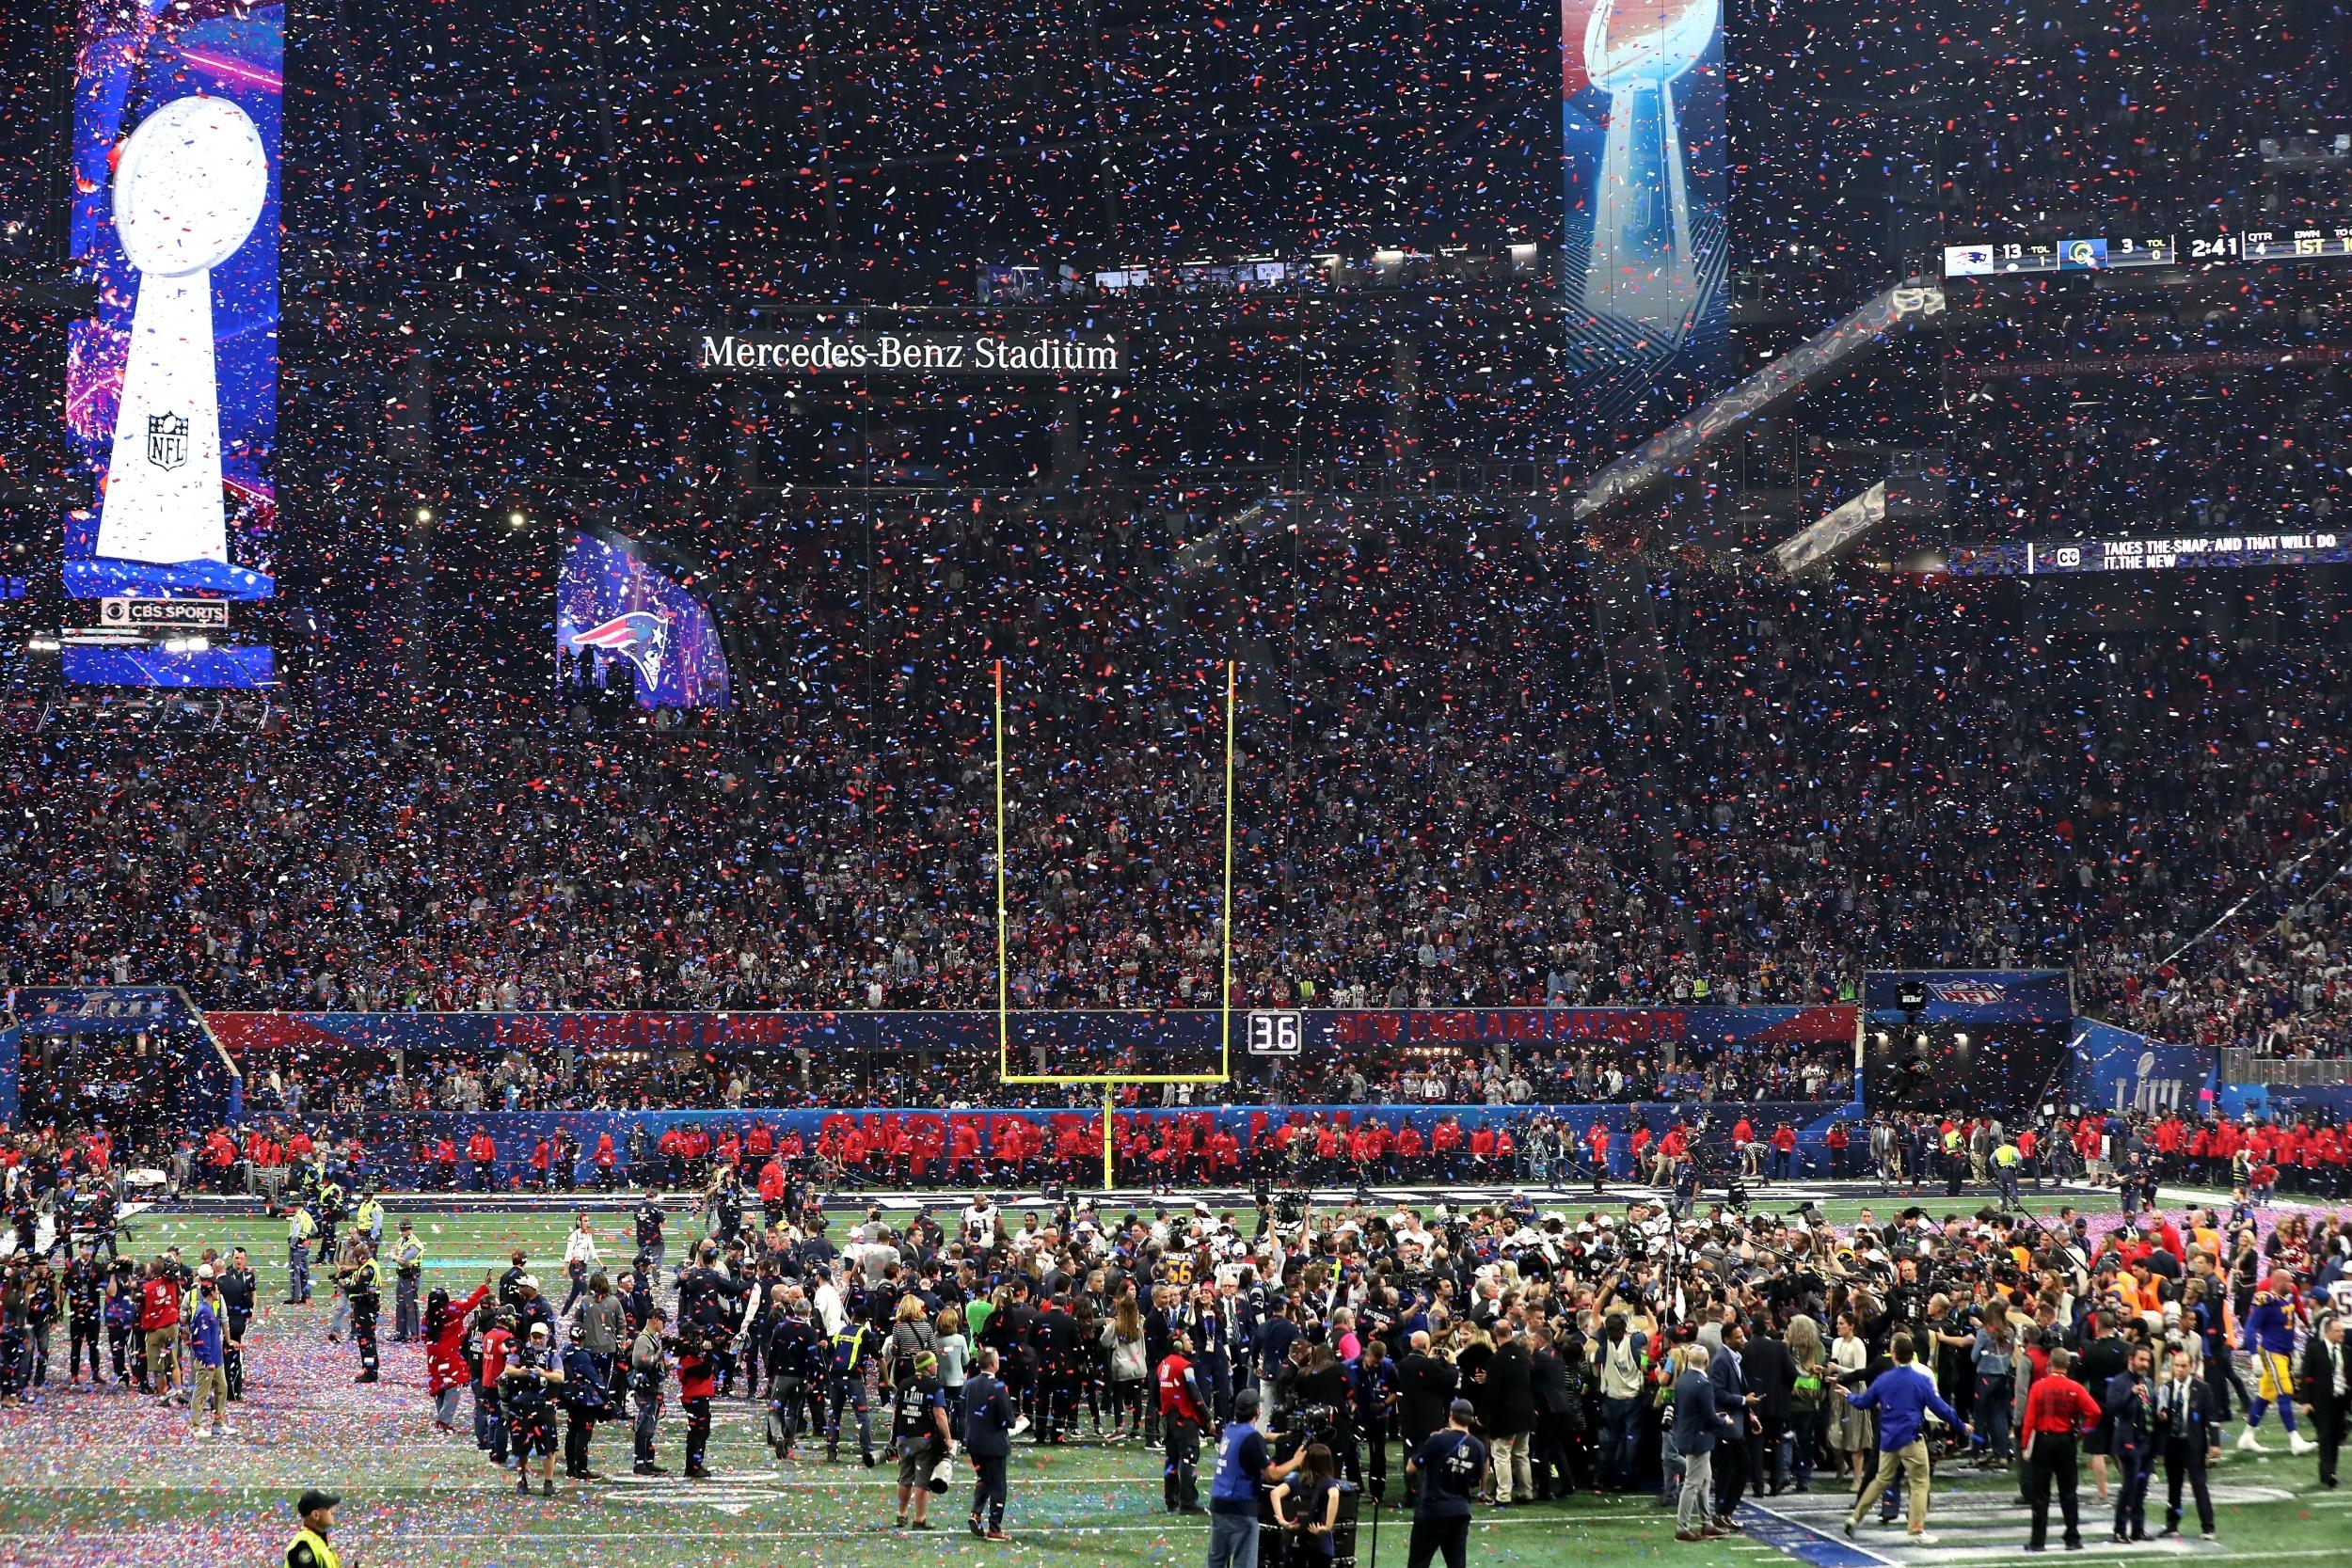 Super Bowl 2019 Attendance: La Rams Vs New England Patriots pertaining to Super Bowl 2019 Stadium Seating Capacity